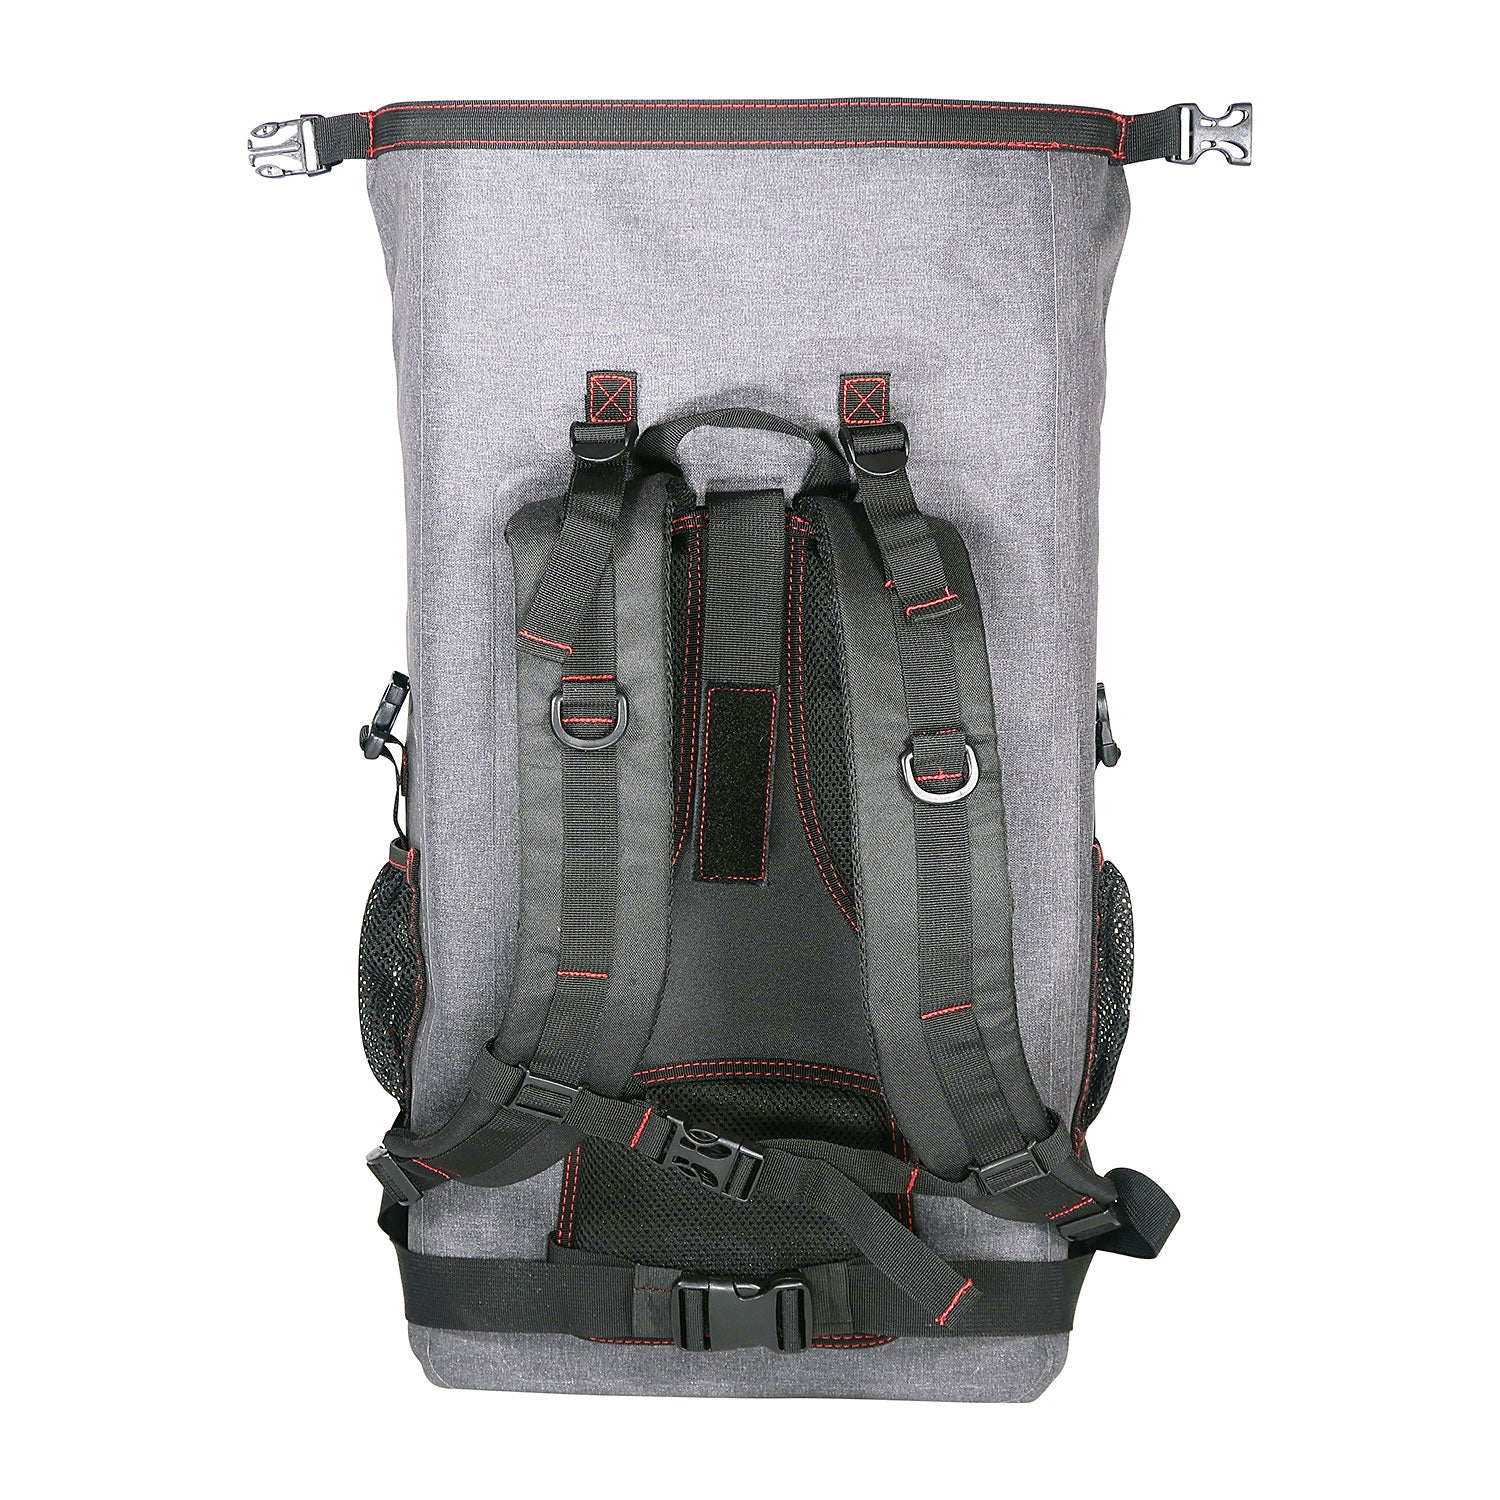 Load image into Gallery viewer, of the 30L Dry-Bag with Front Net Pouch front look